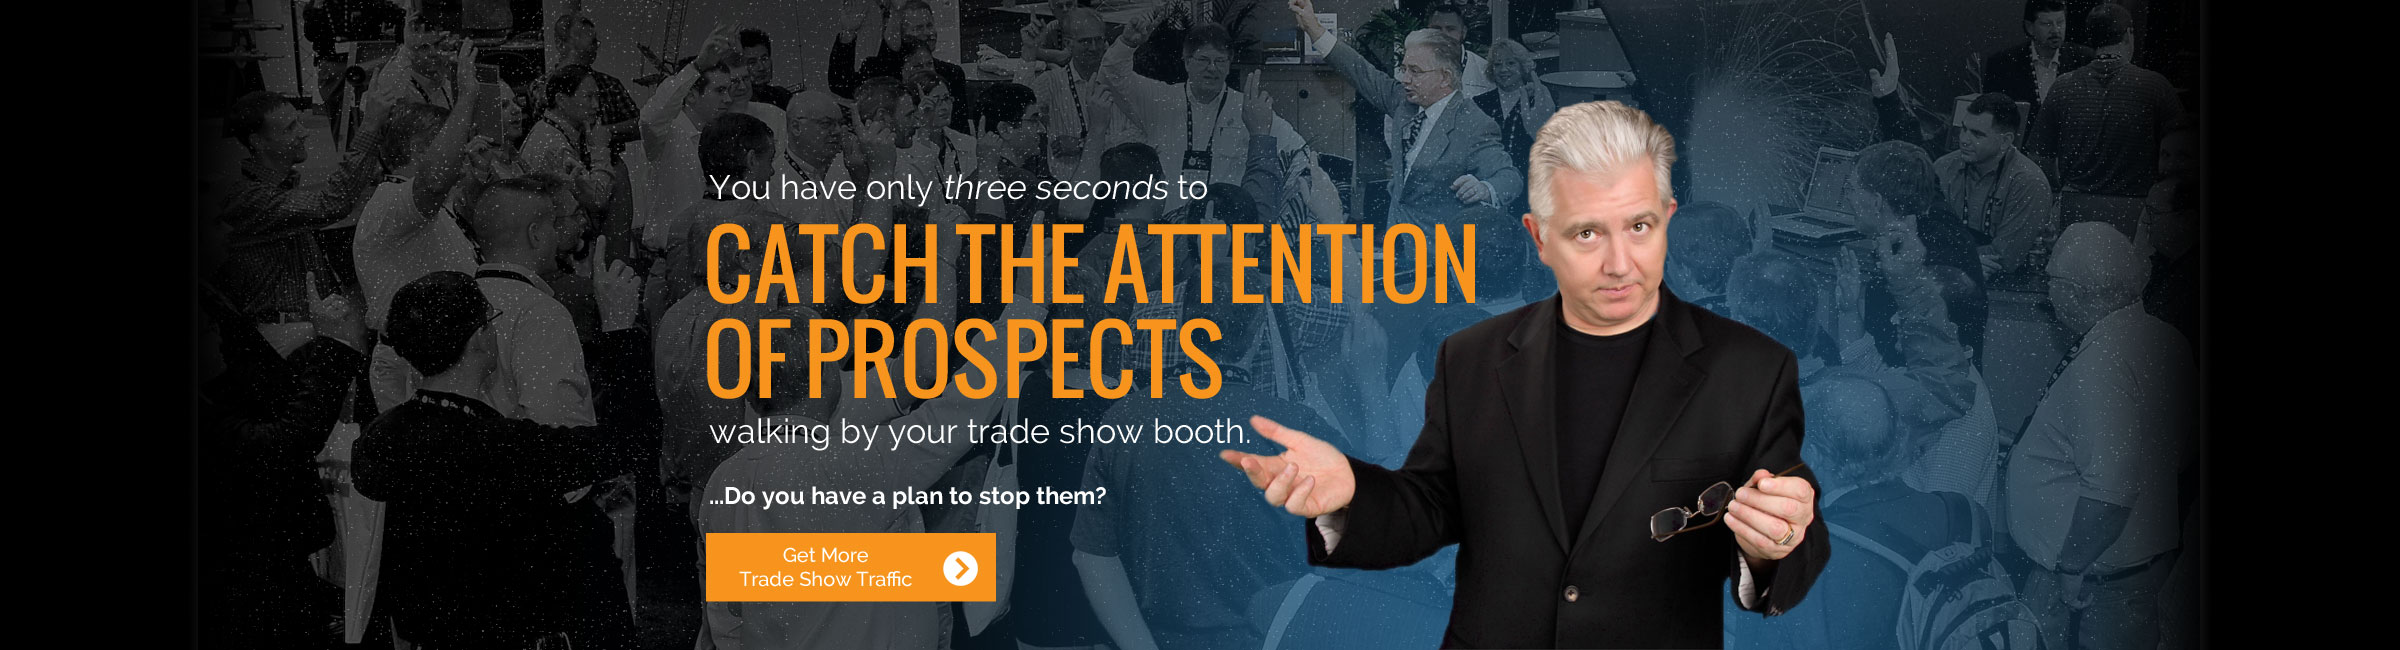 You only have three seconds to catch the attention of prospects walking by your trade show booth.